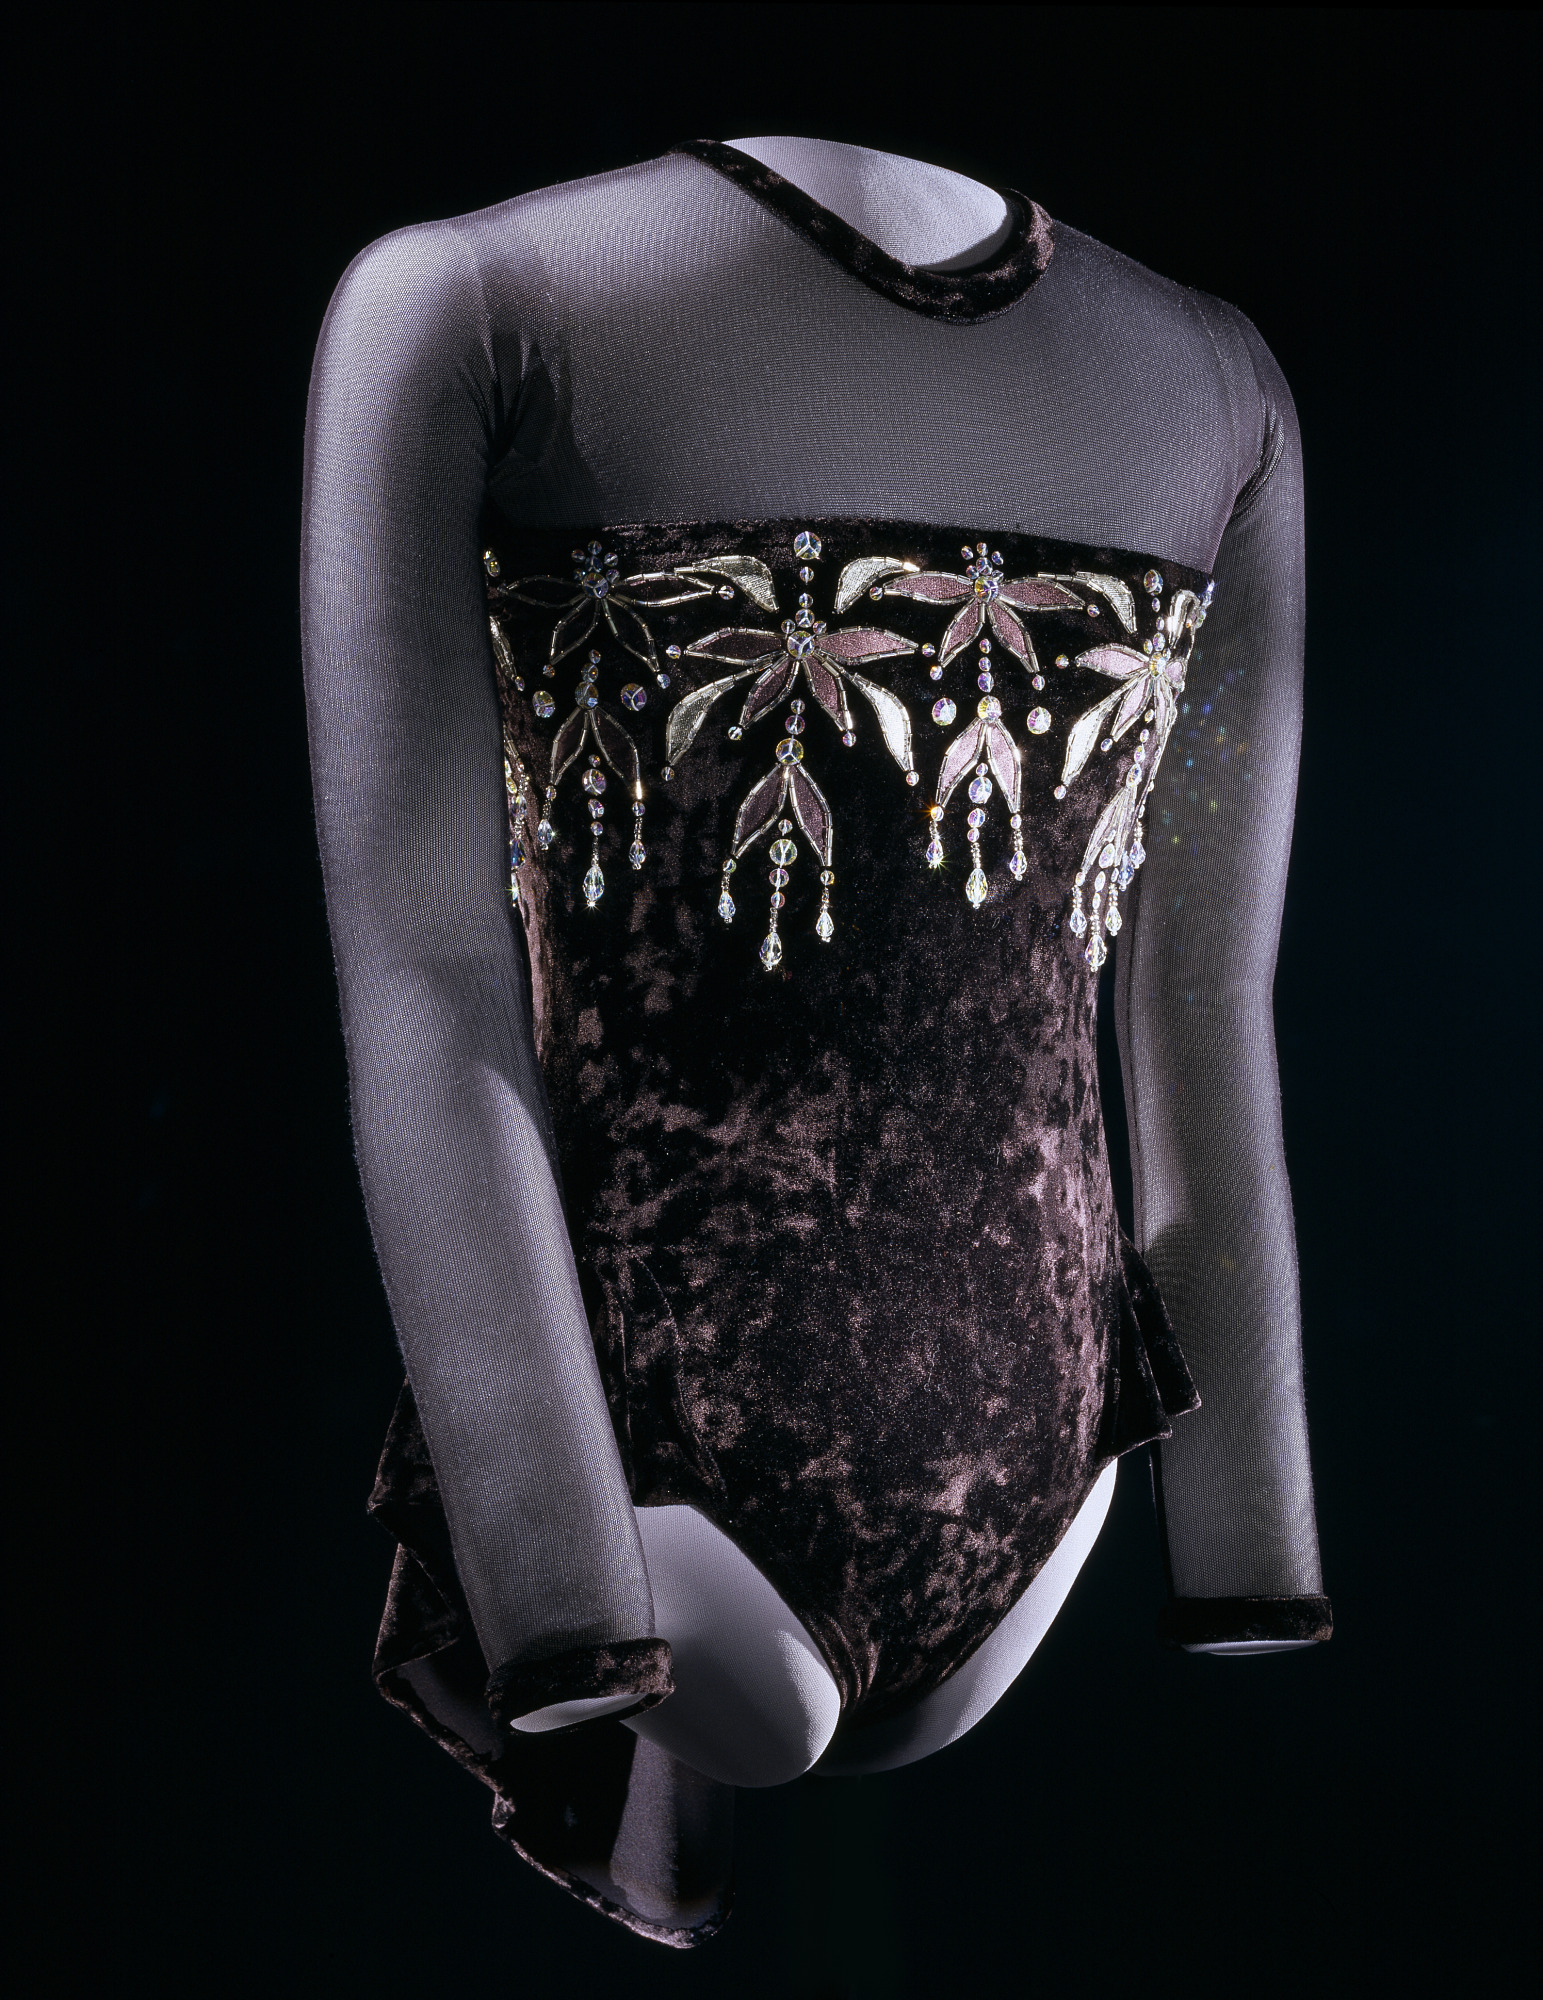 images for Ice Skating Costume, worn by Kristi Yamaguchi